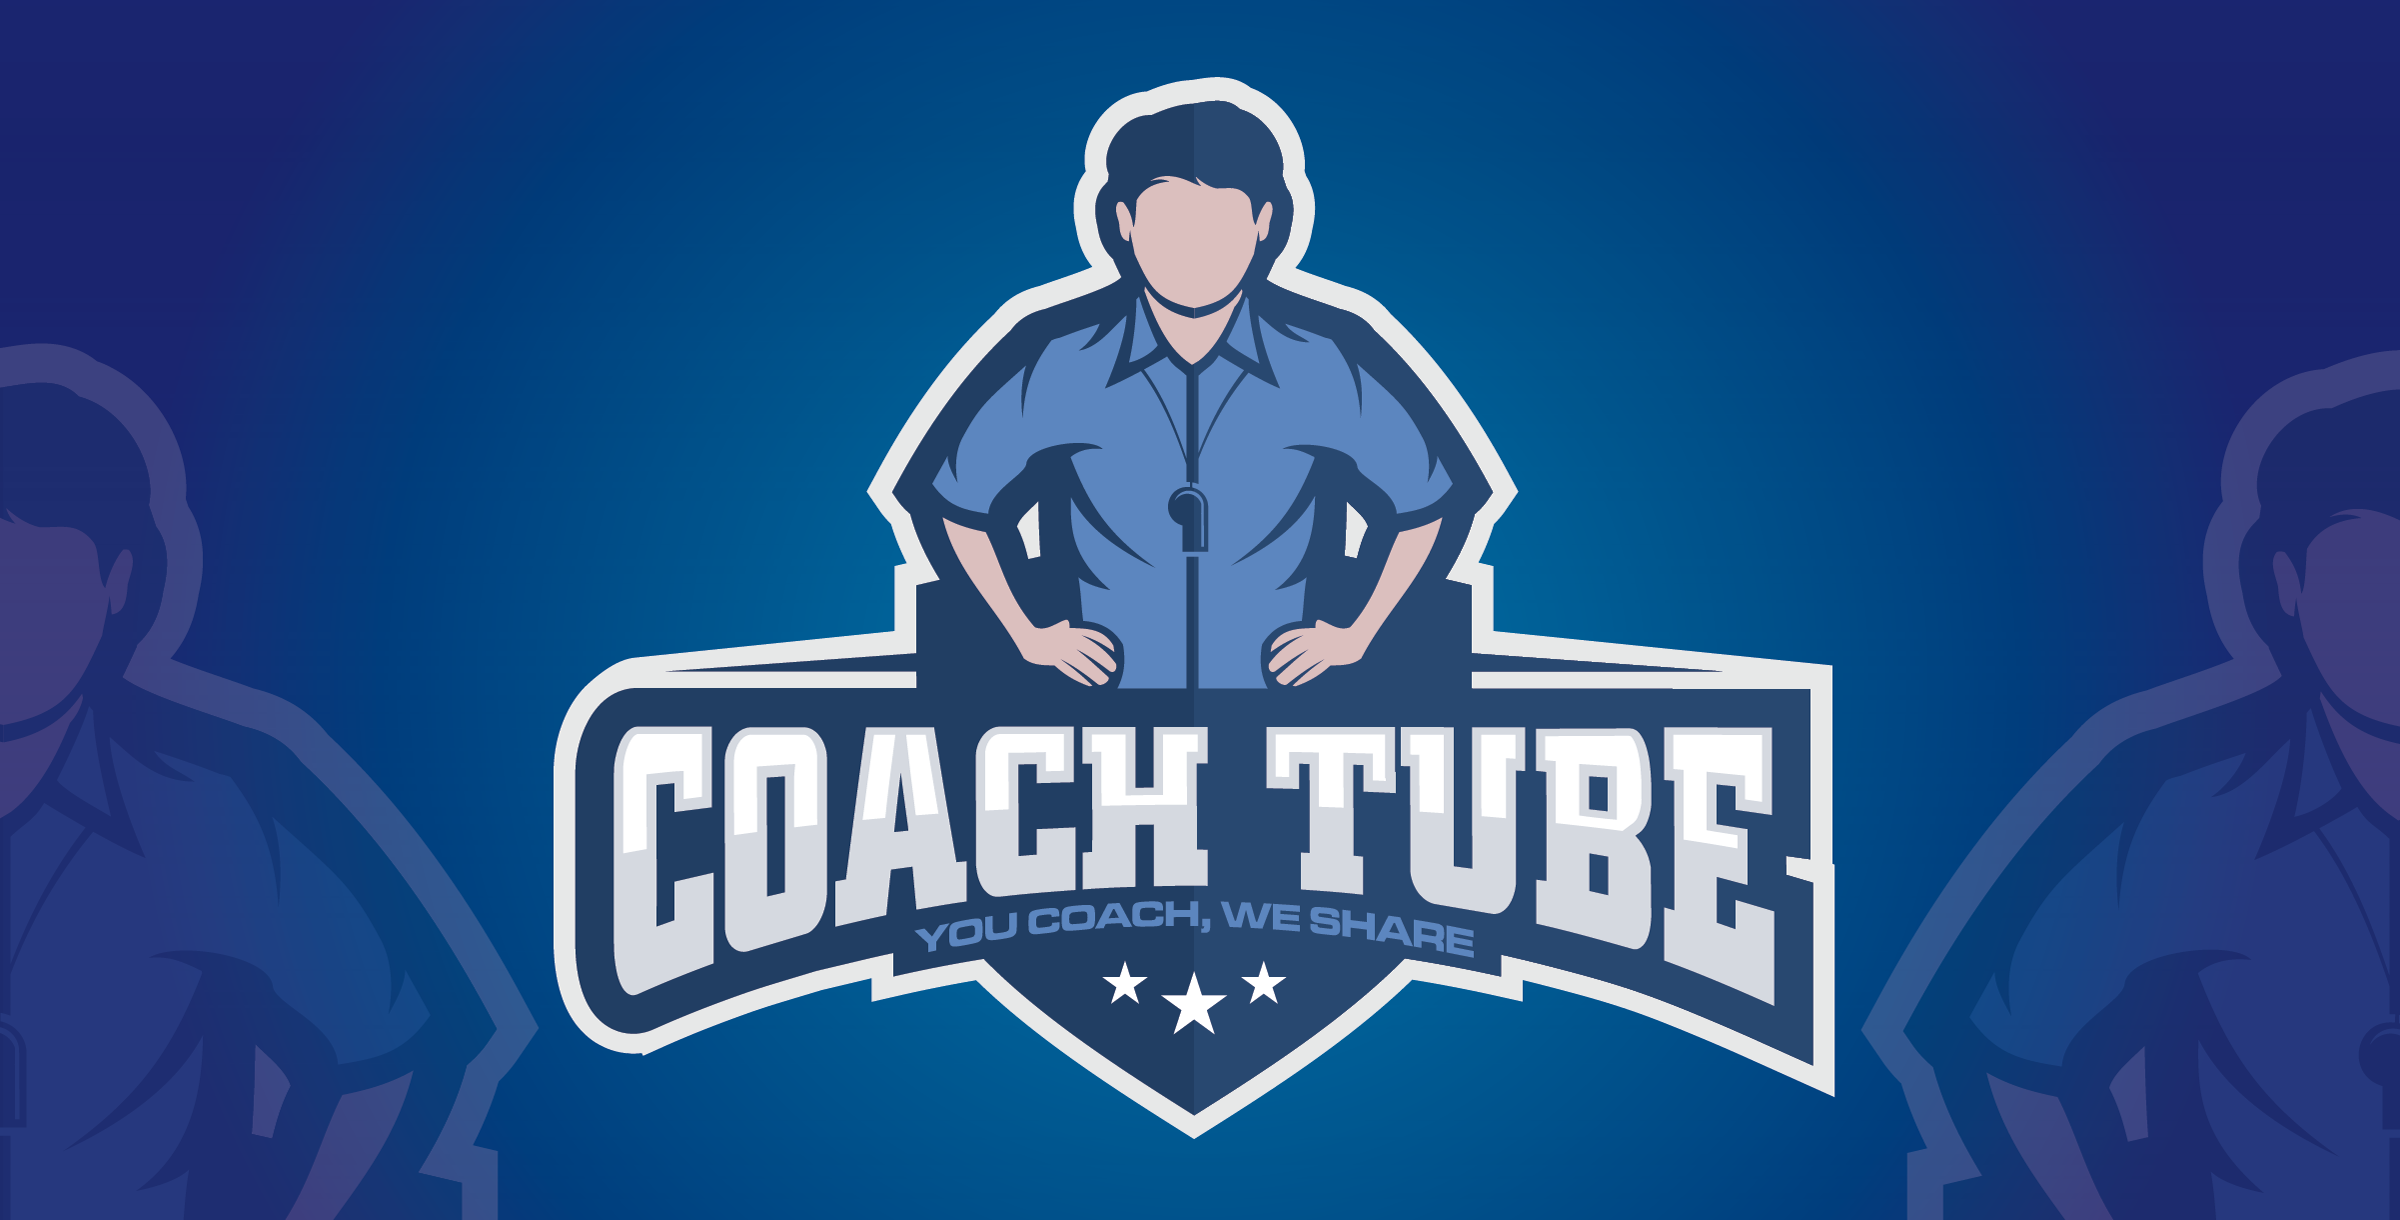 coachtube-the-best-in-sports-coaching-videos